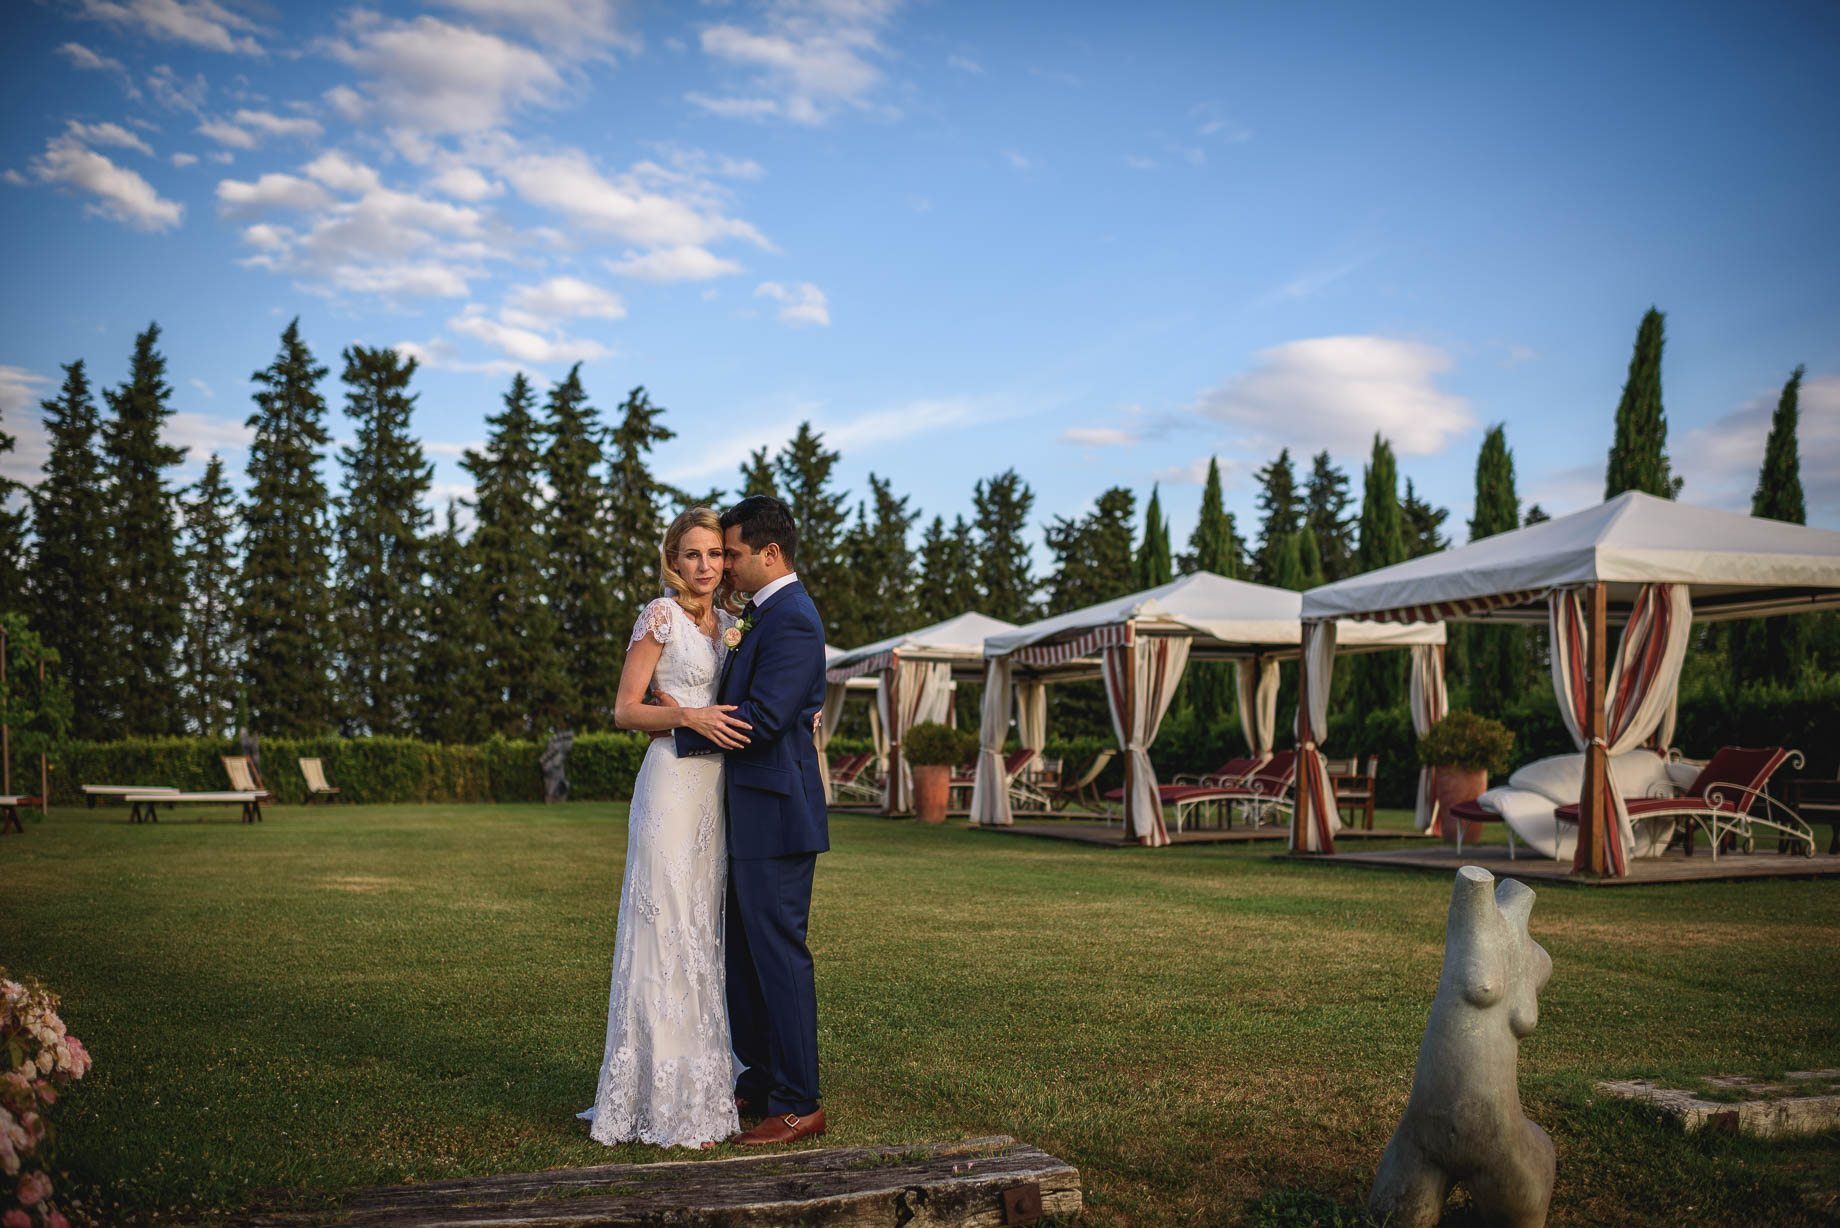 Tuscany wedding photography - Roisin and Moubin - Guy Collier Photography (150 of 251)